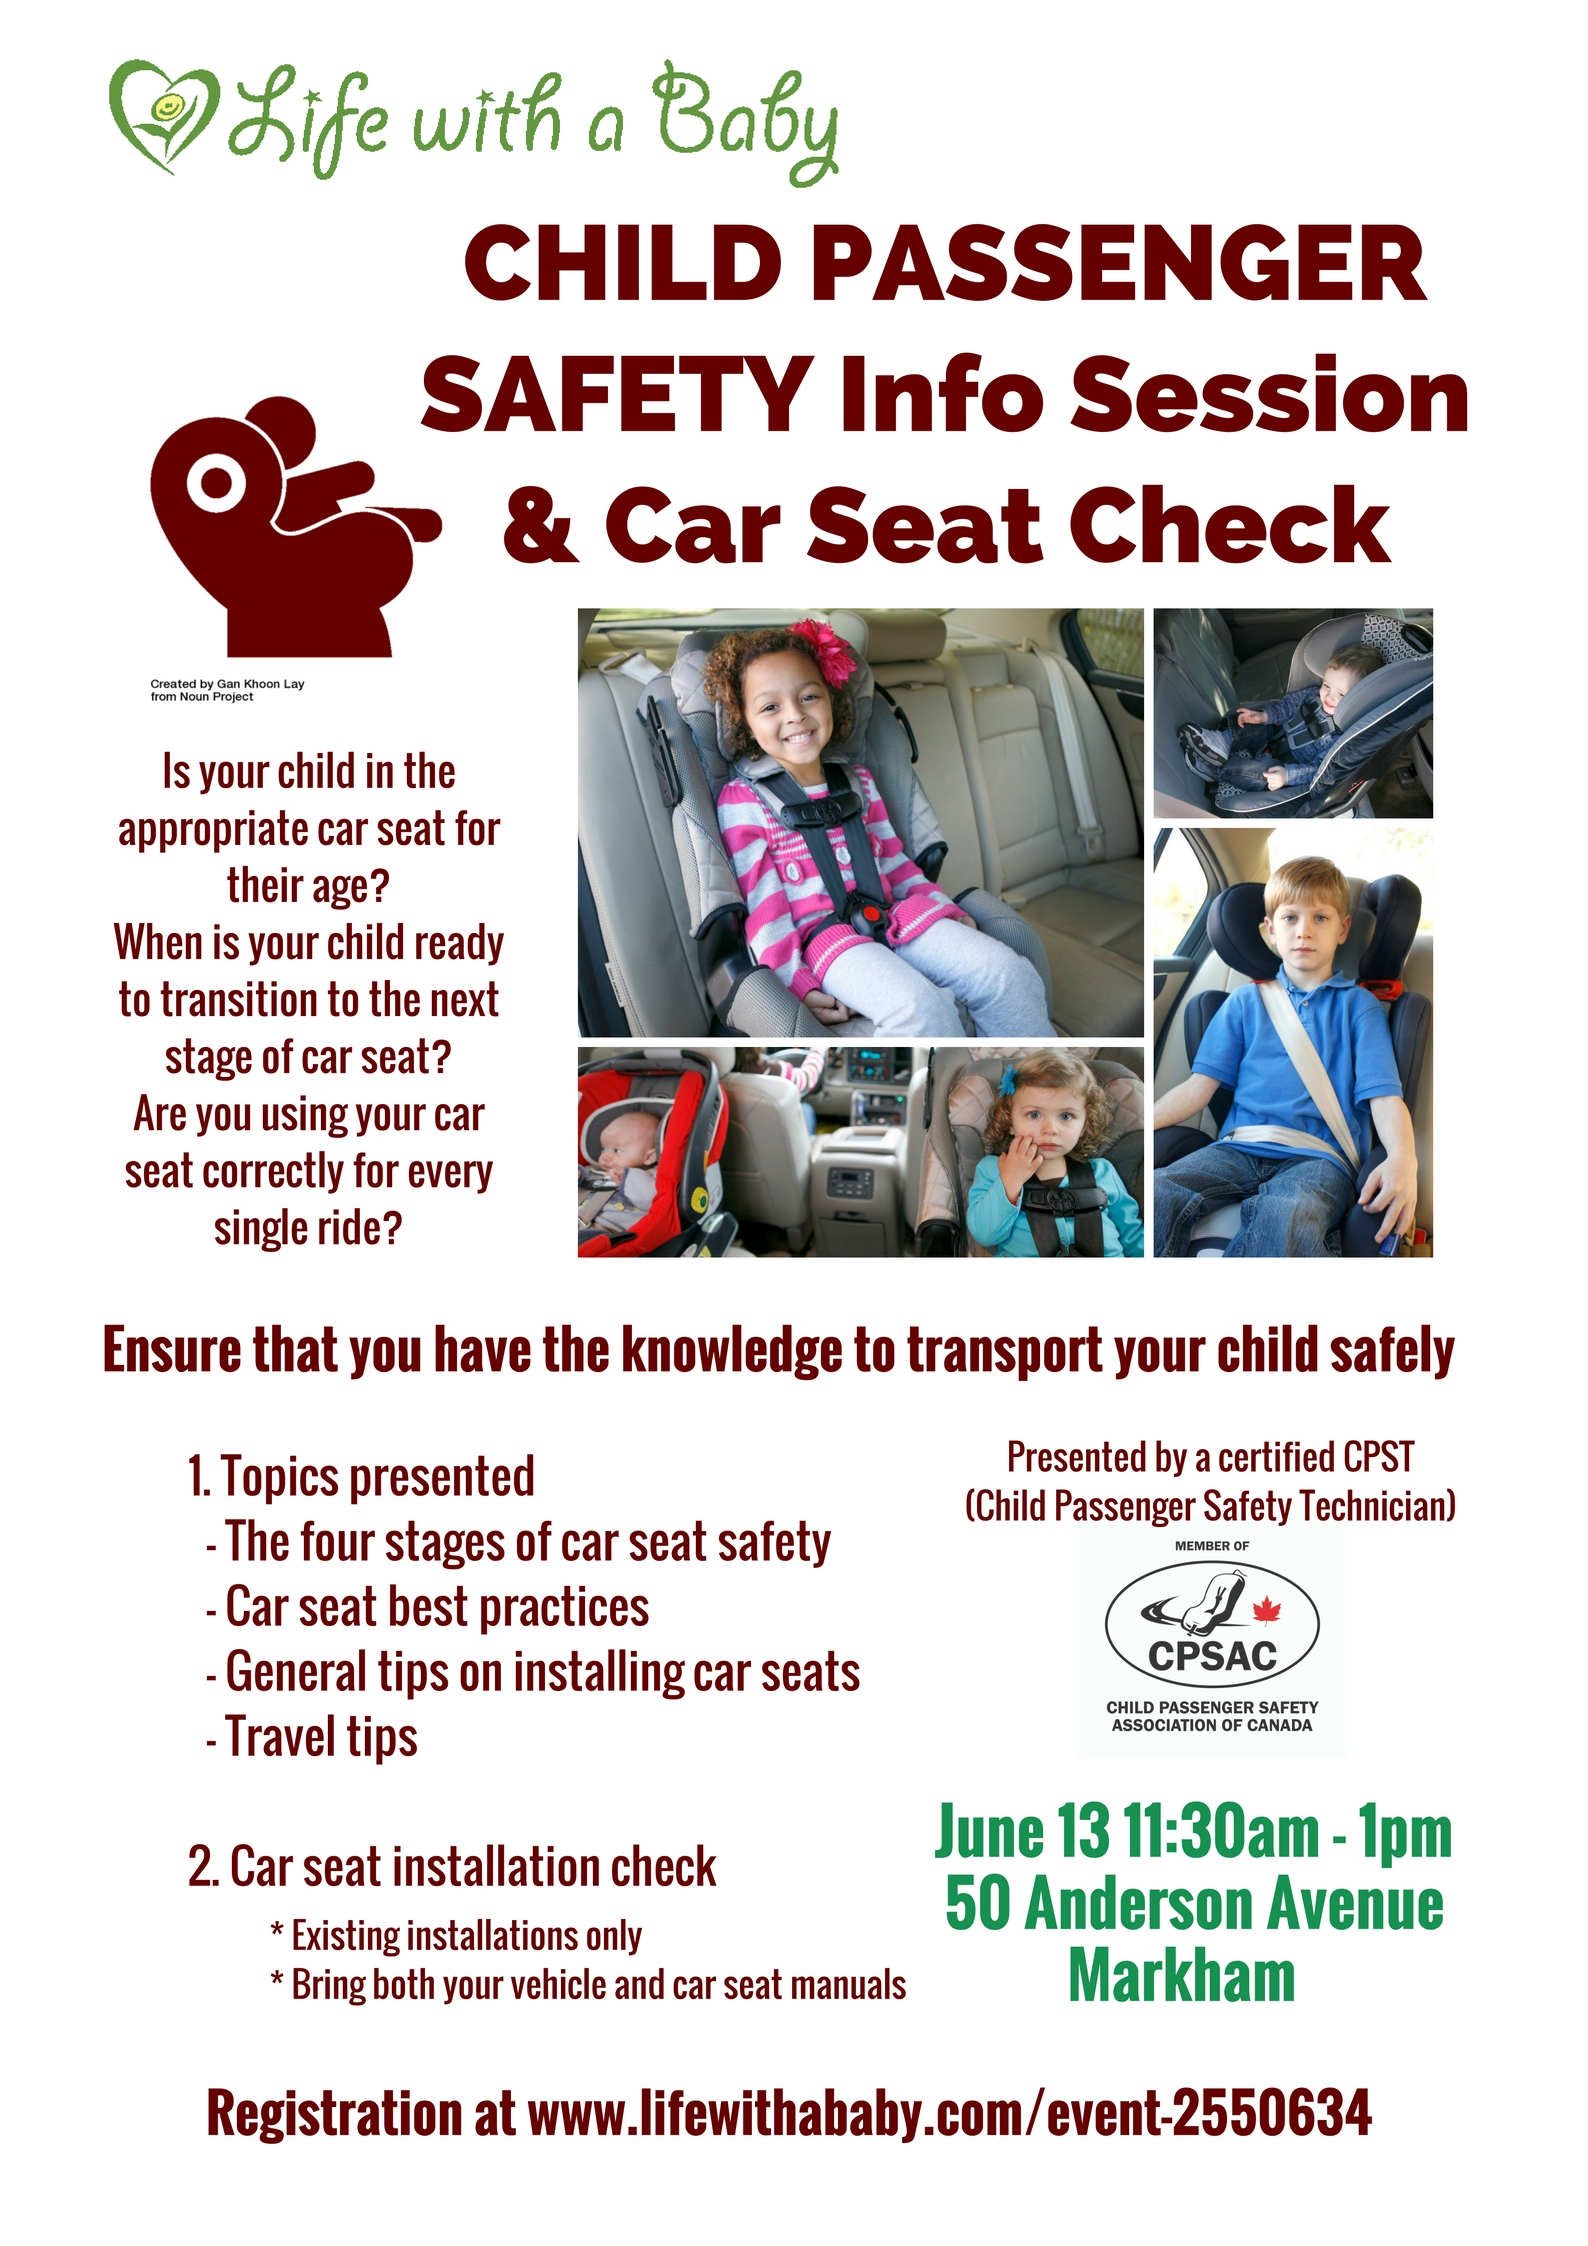 car seat safety essay Car seat safety do's & don'ts that will help keep your child safe while riding in your vehicle view tips to protect your newborn, infant or toddler.